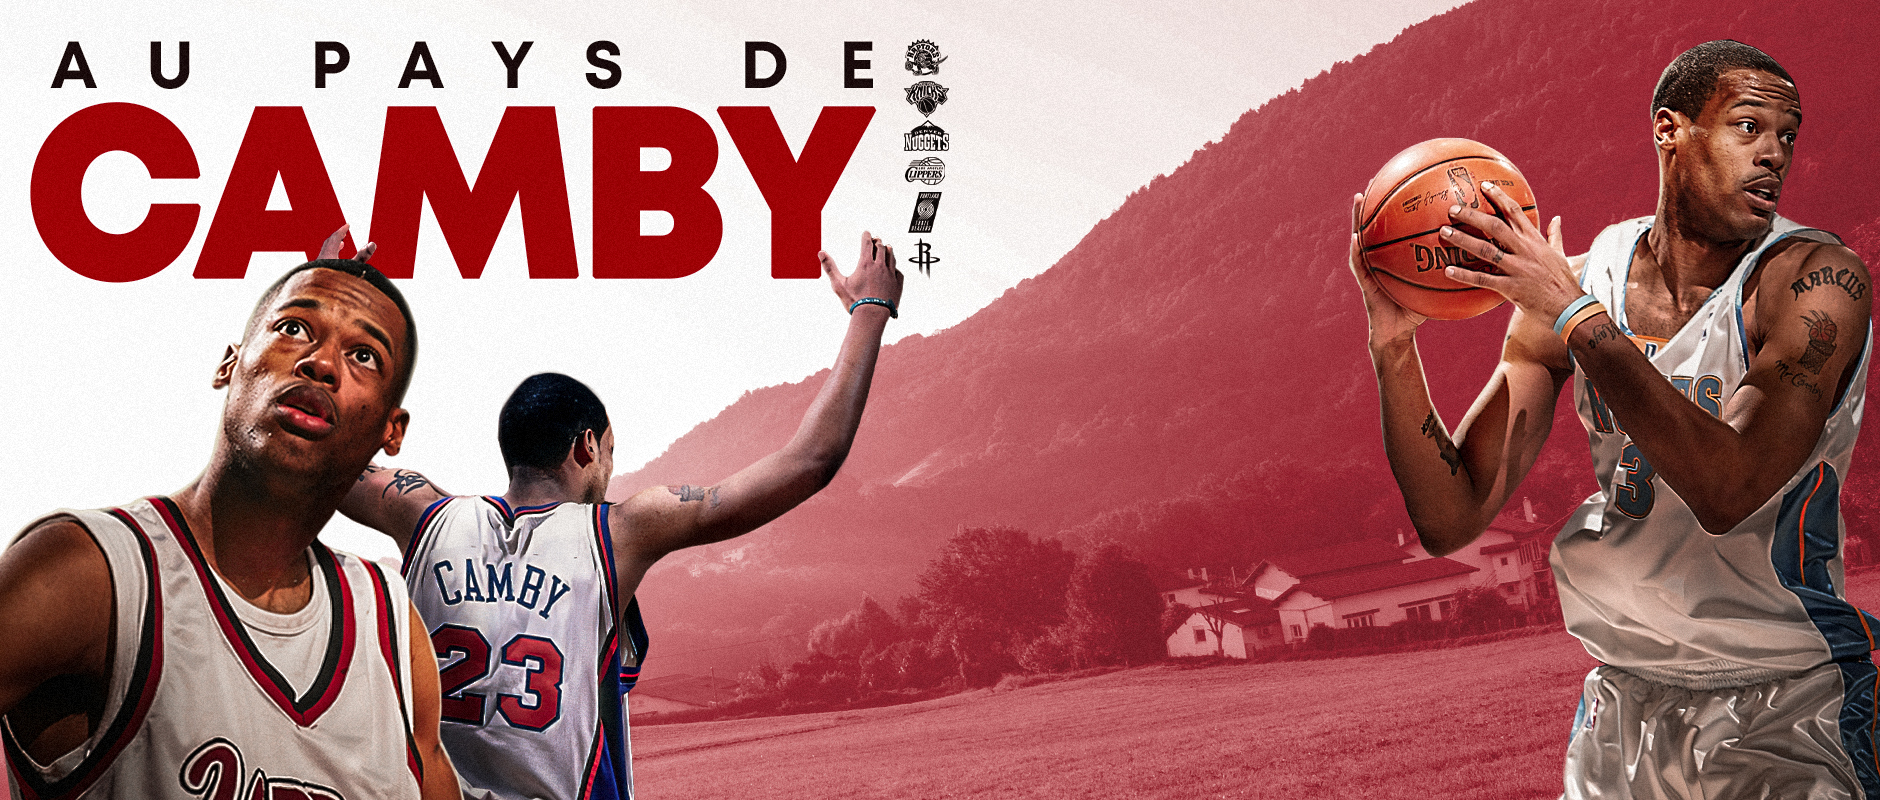 Marcus Camby – Au Pays deGamby